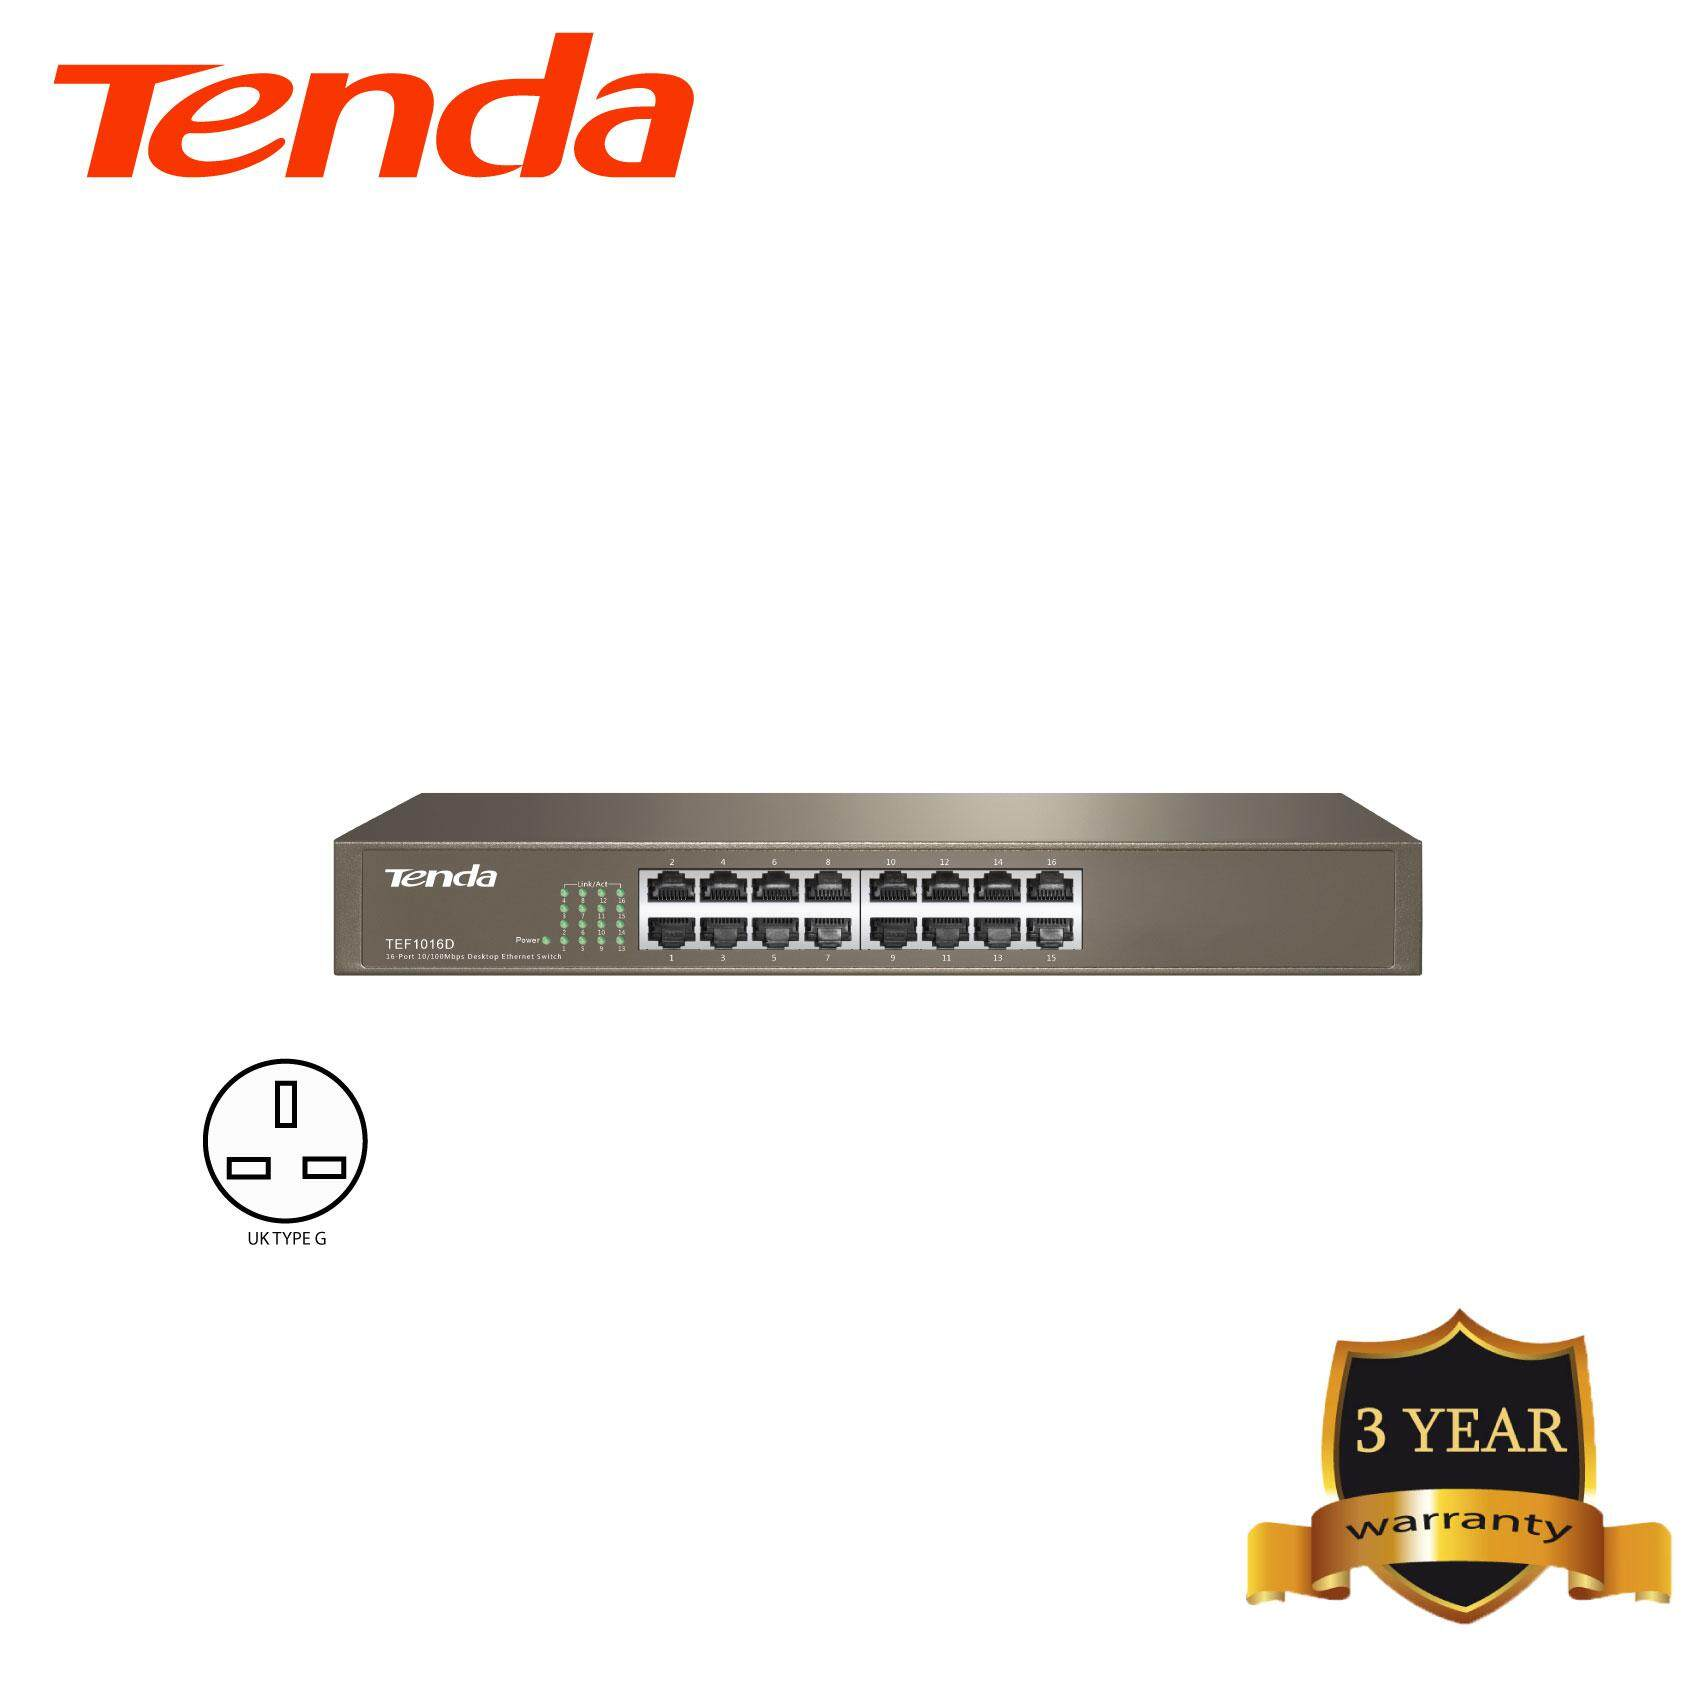 Tenda TEF1016D 16-port 10/100M Switch